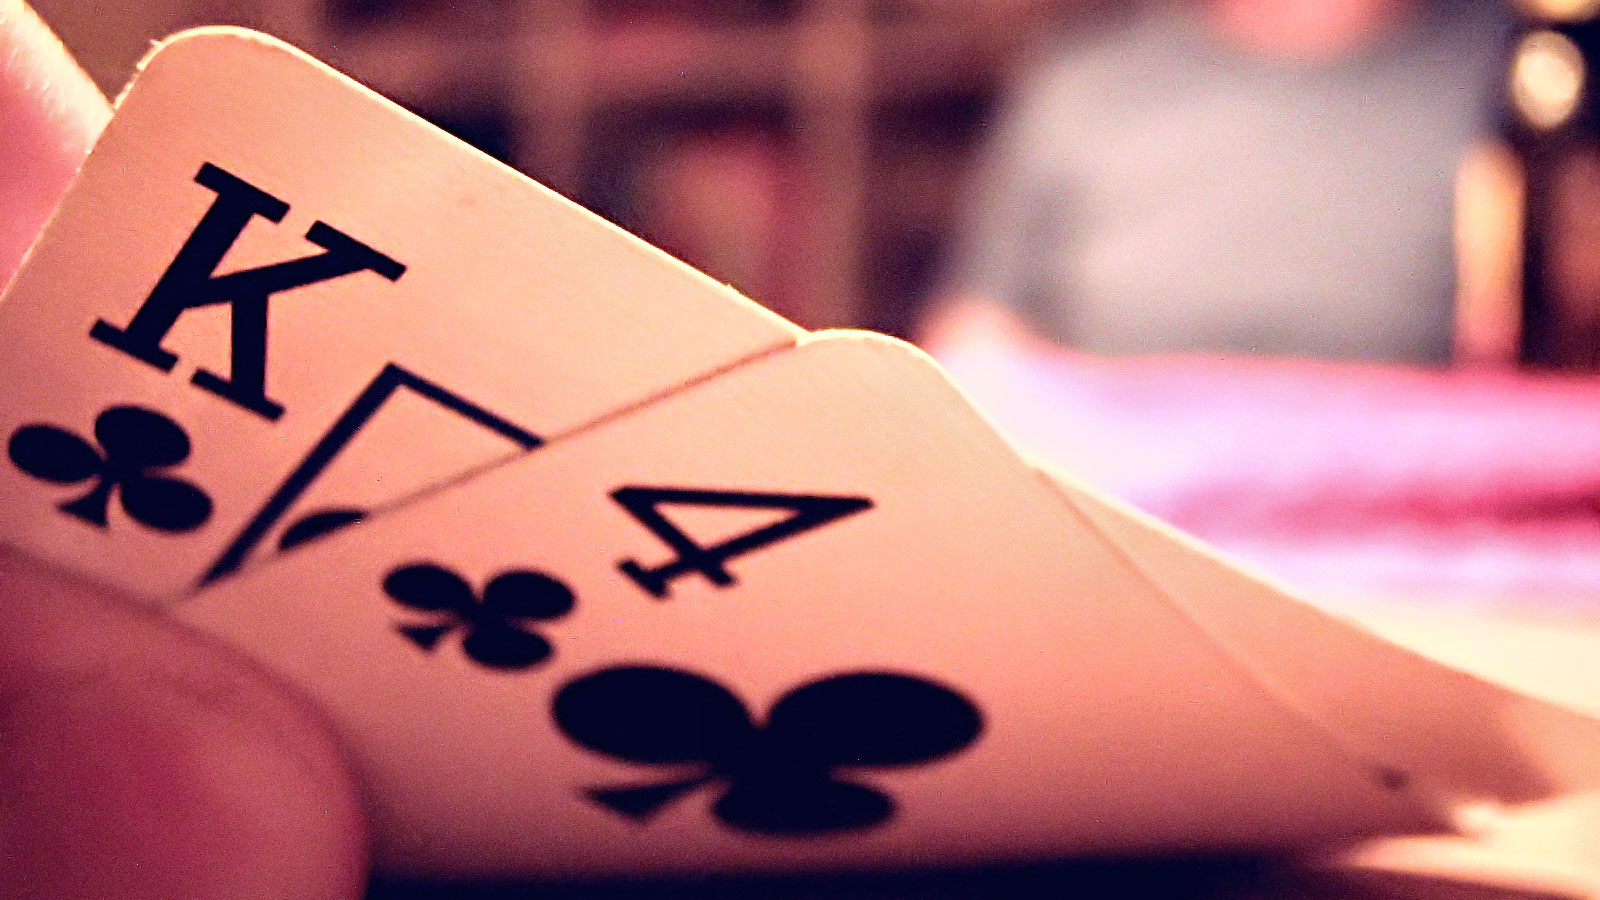 Show Your Hands: Texas Hold 'em is The Best